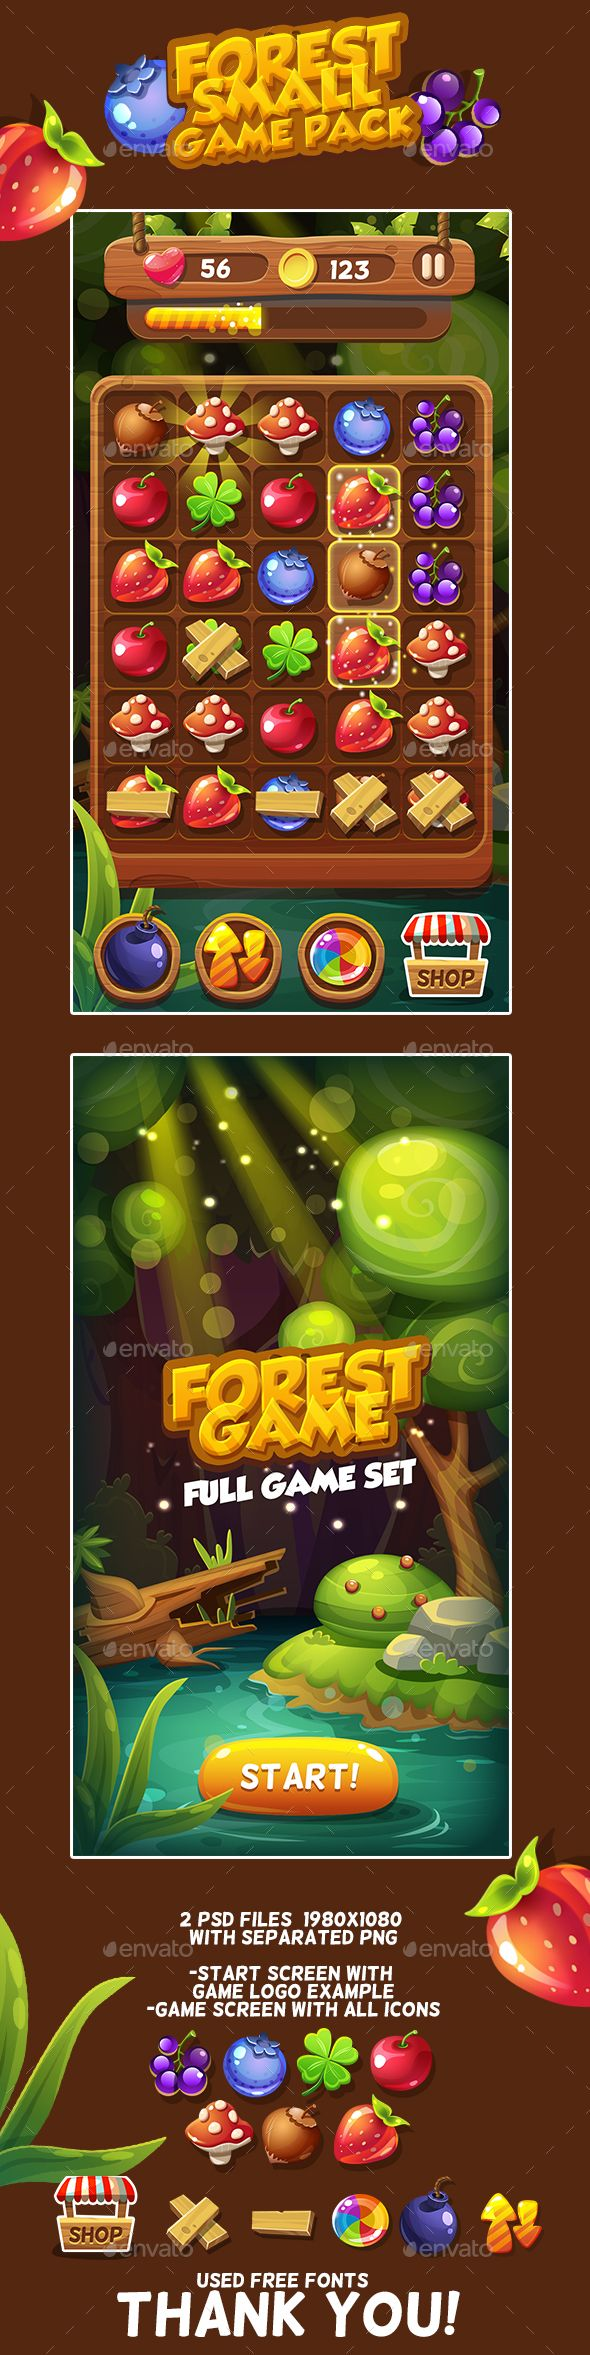 Forest Game Icons Pack — Photoshop PSD #flower #elements • Available here → https://graphicriver.net/item/forest-game-icons-pack/17974057?ref=pxcr